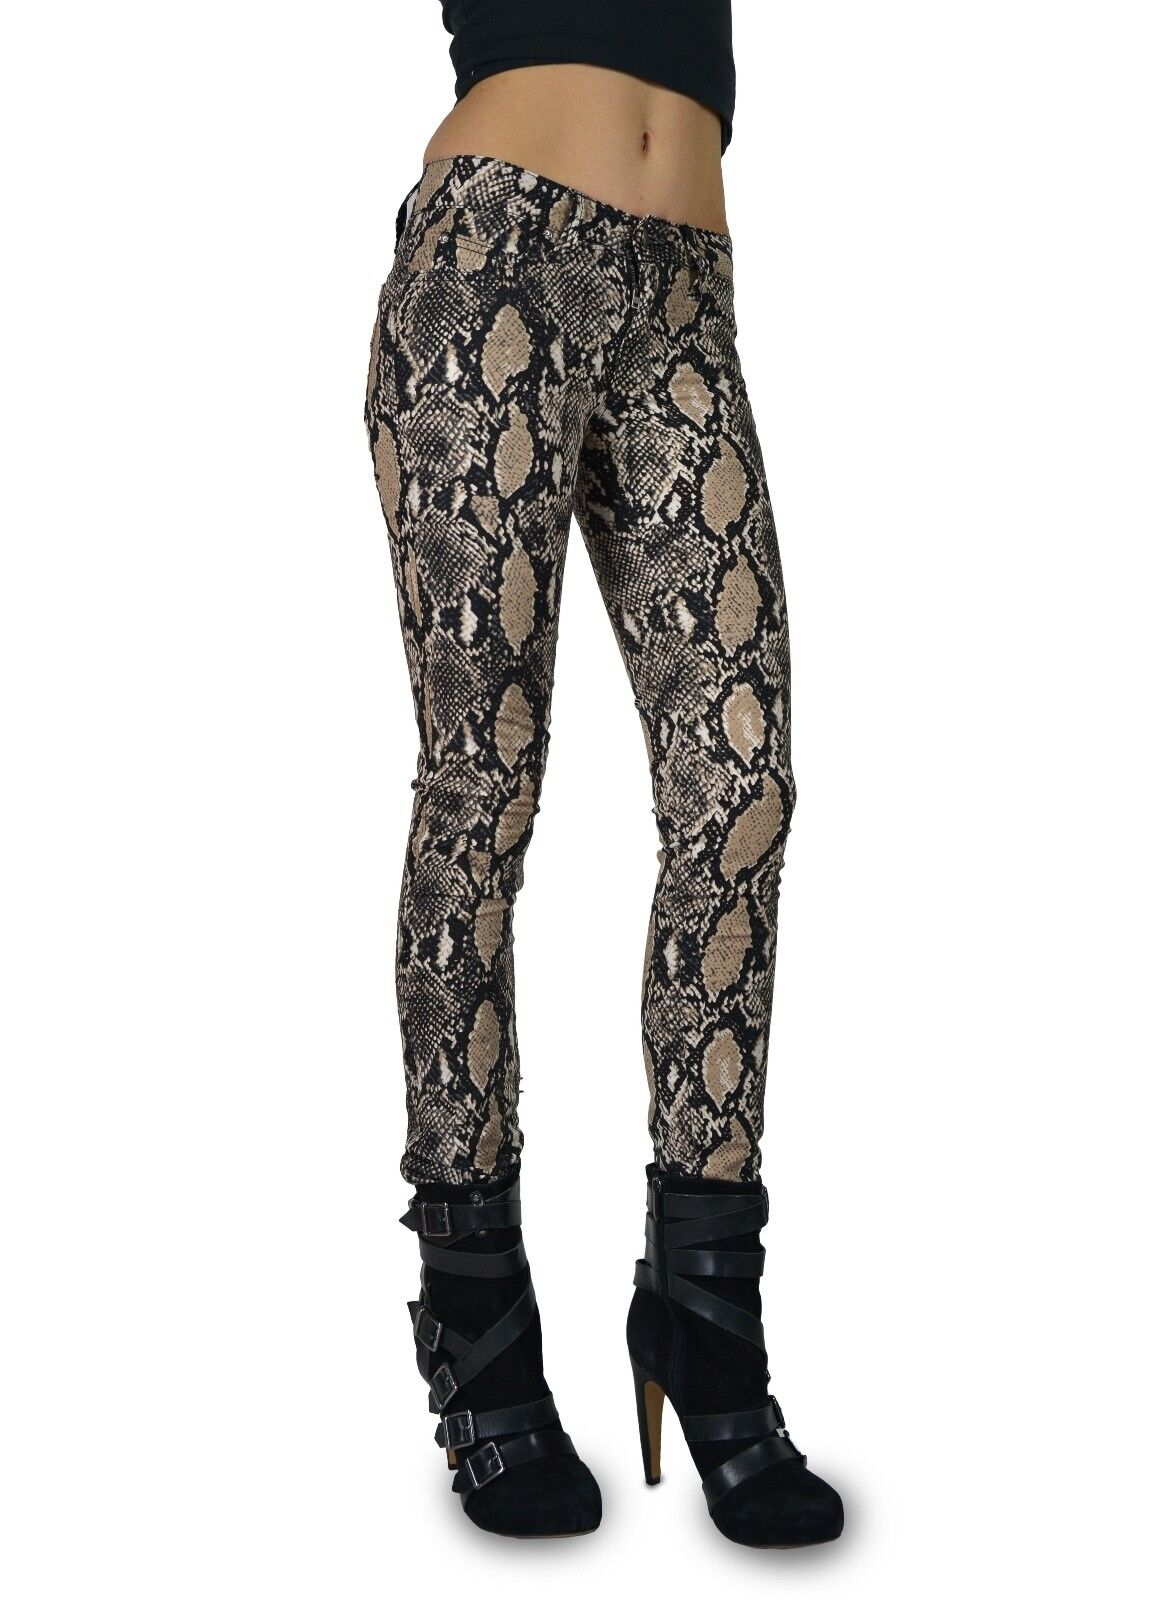 TRIPP EMO GOTH PUNK ROCK STAR NATURAL PYTHON SNAKE PRINTED T-JEAN PANTS IS6235P Clothing, Shoes & Accessories